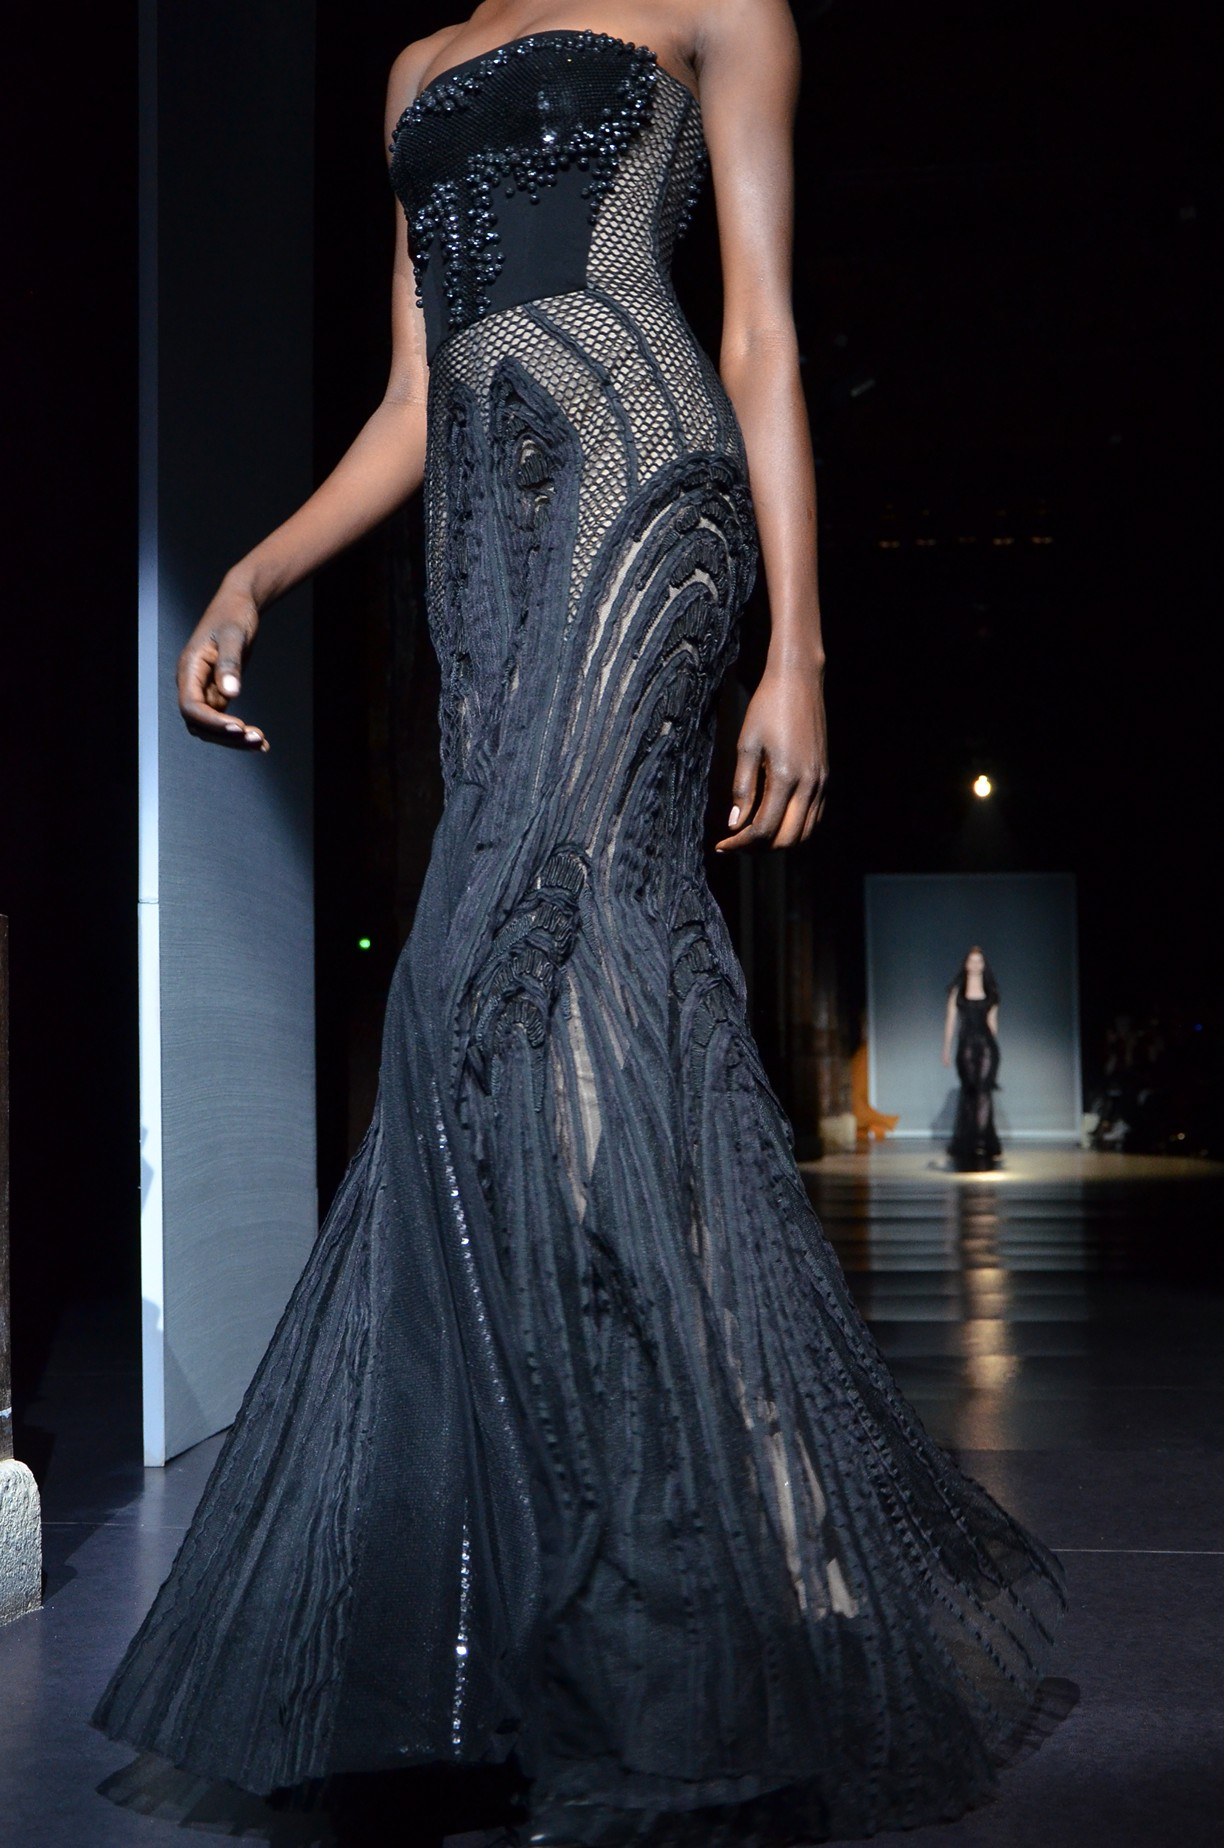 File basil soda spring summer haute couture 2012 21 jpg for Haute couture wikipedia